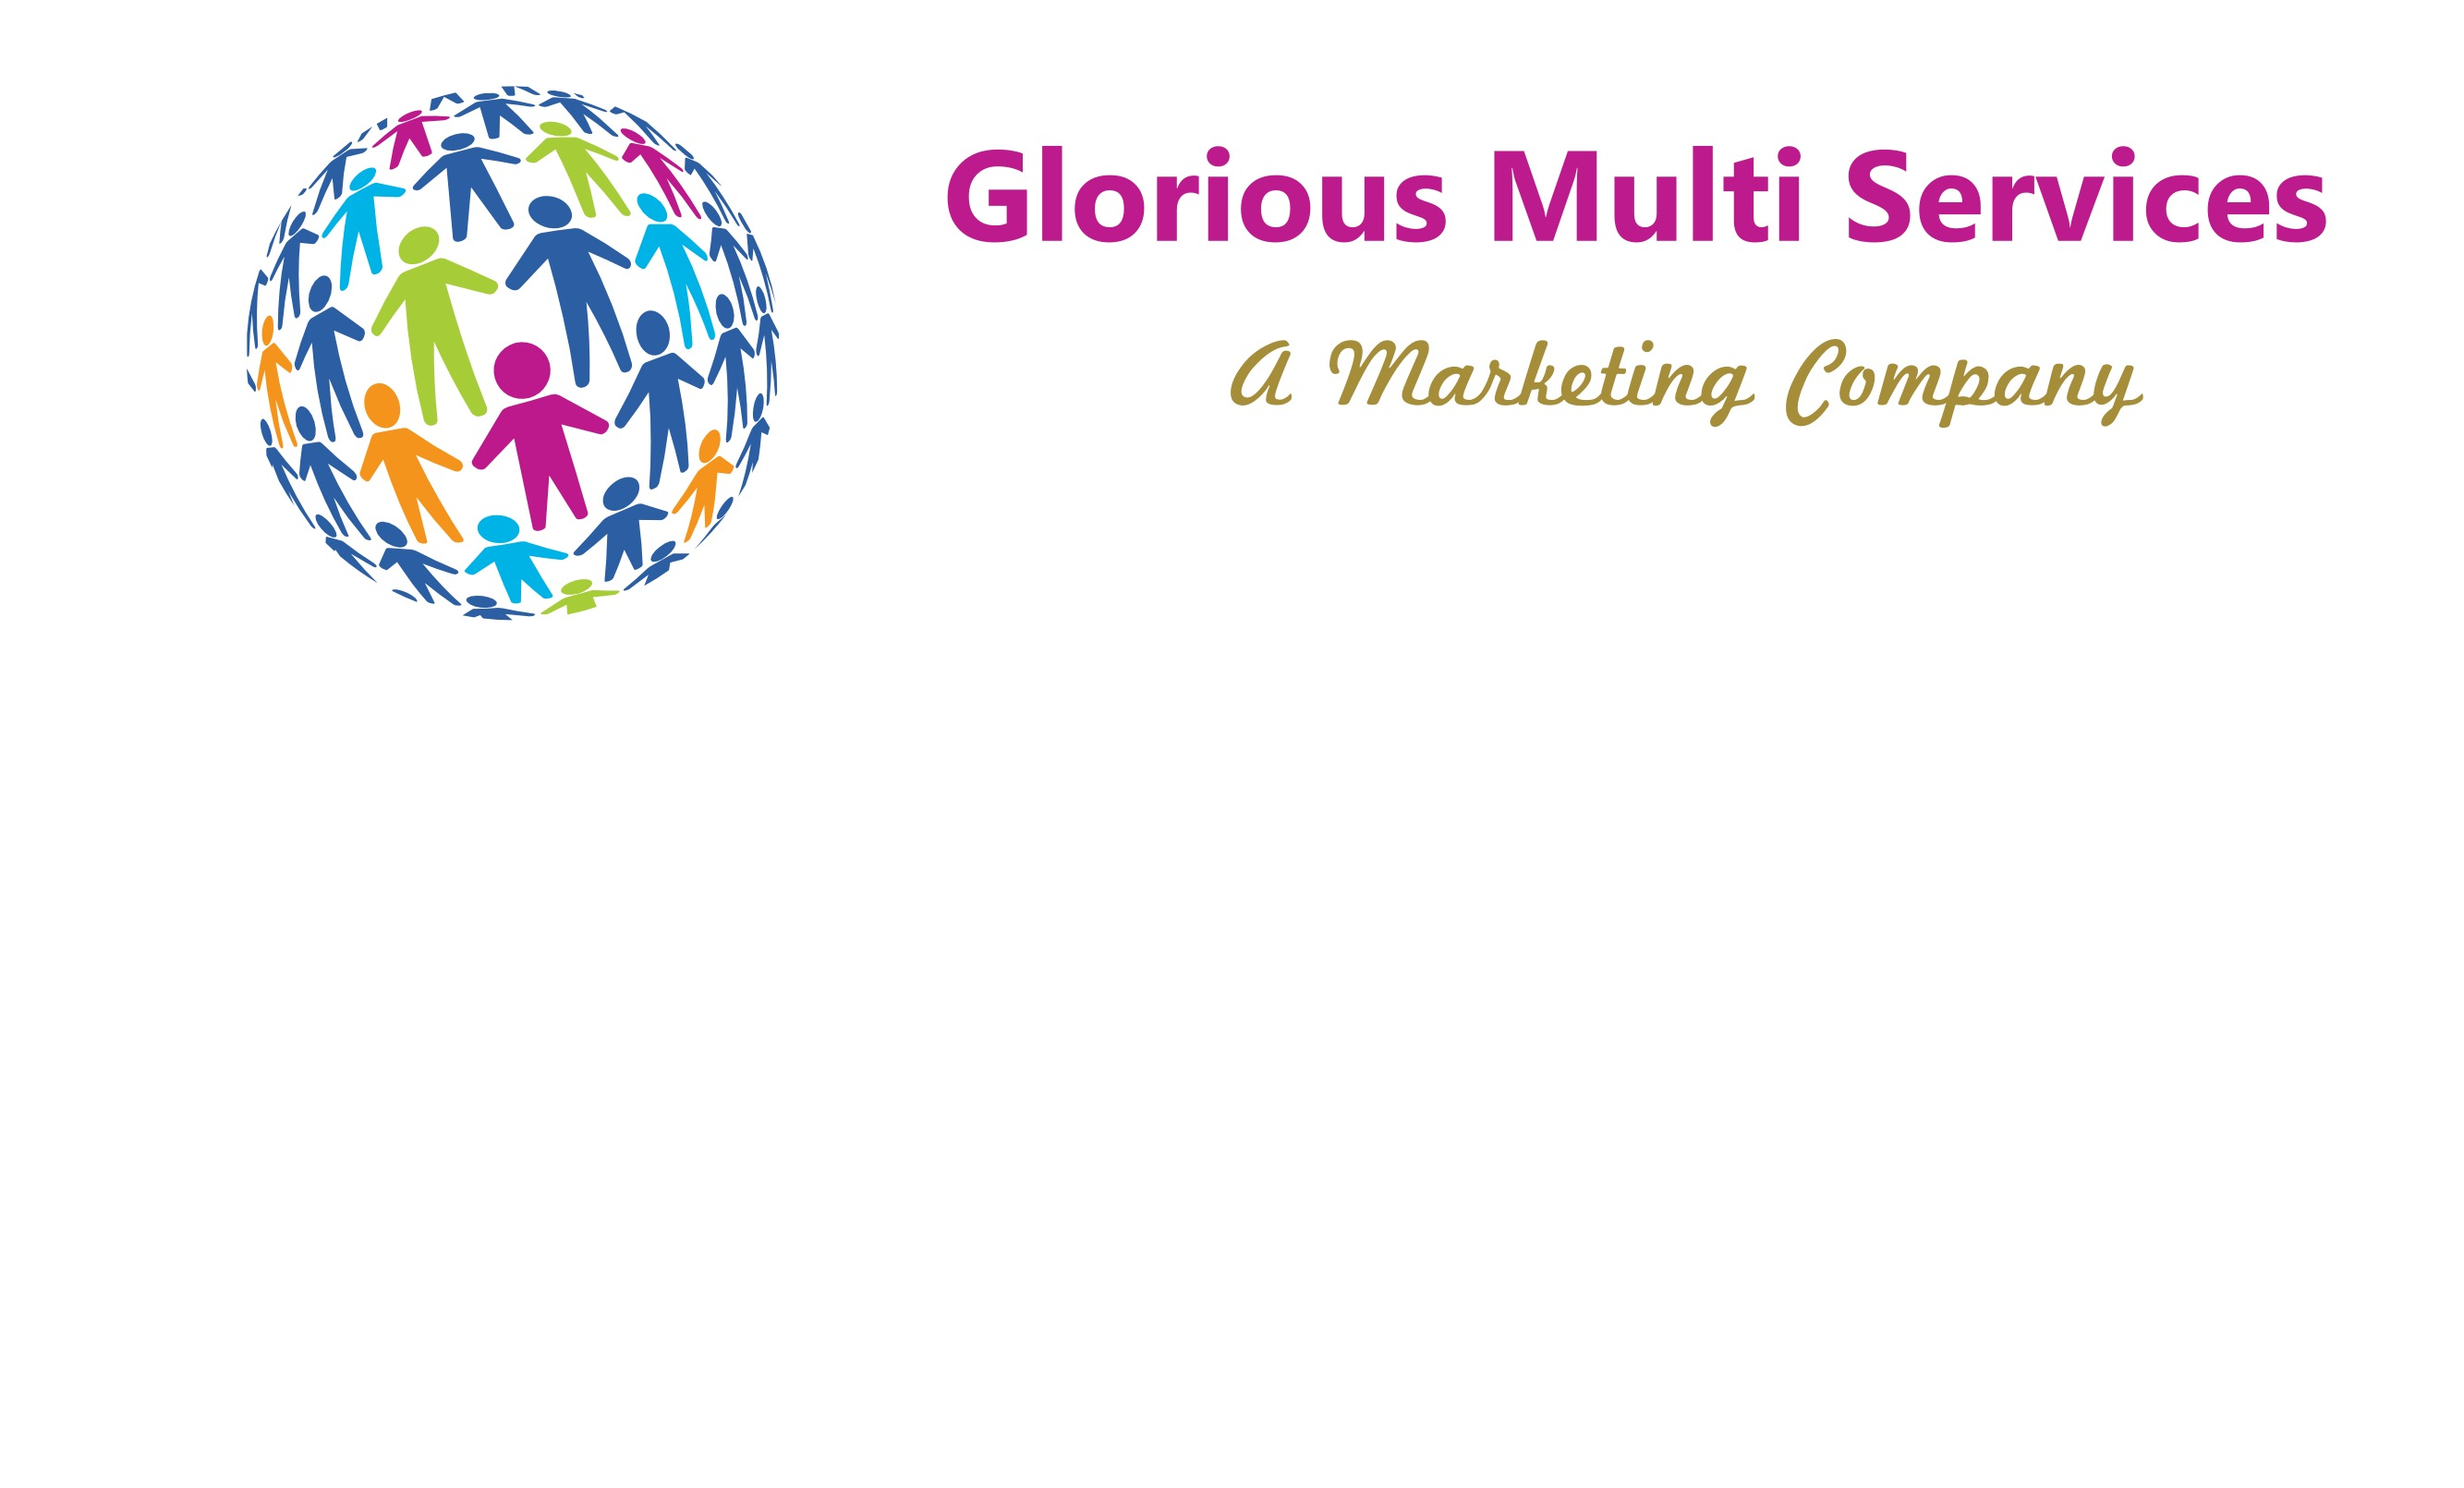 GLORIOUS MULTI SERVICES